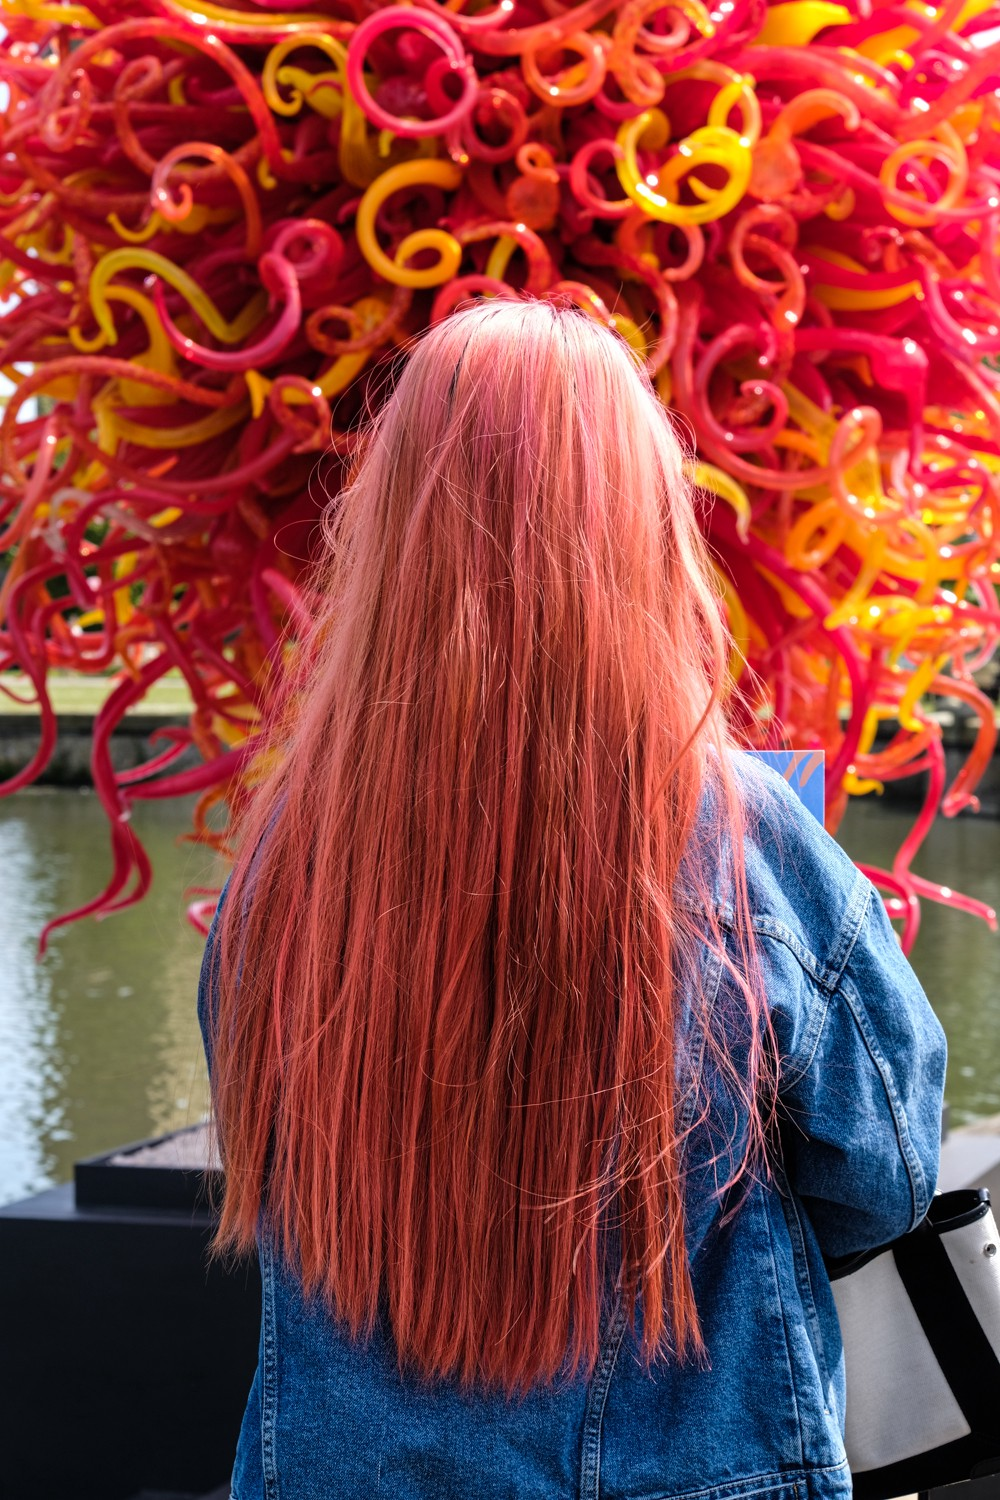 Chihuly glass sculpture Kew Gardens and girl with coral hair